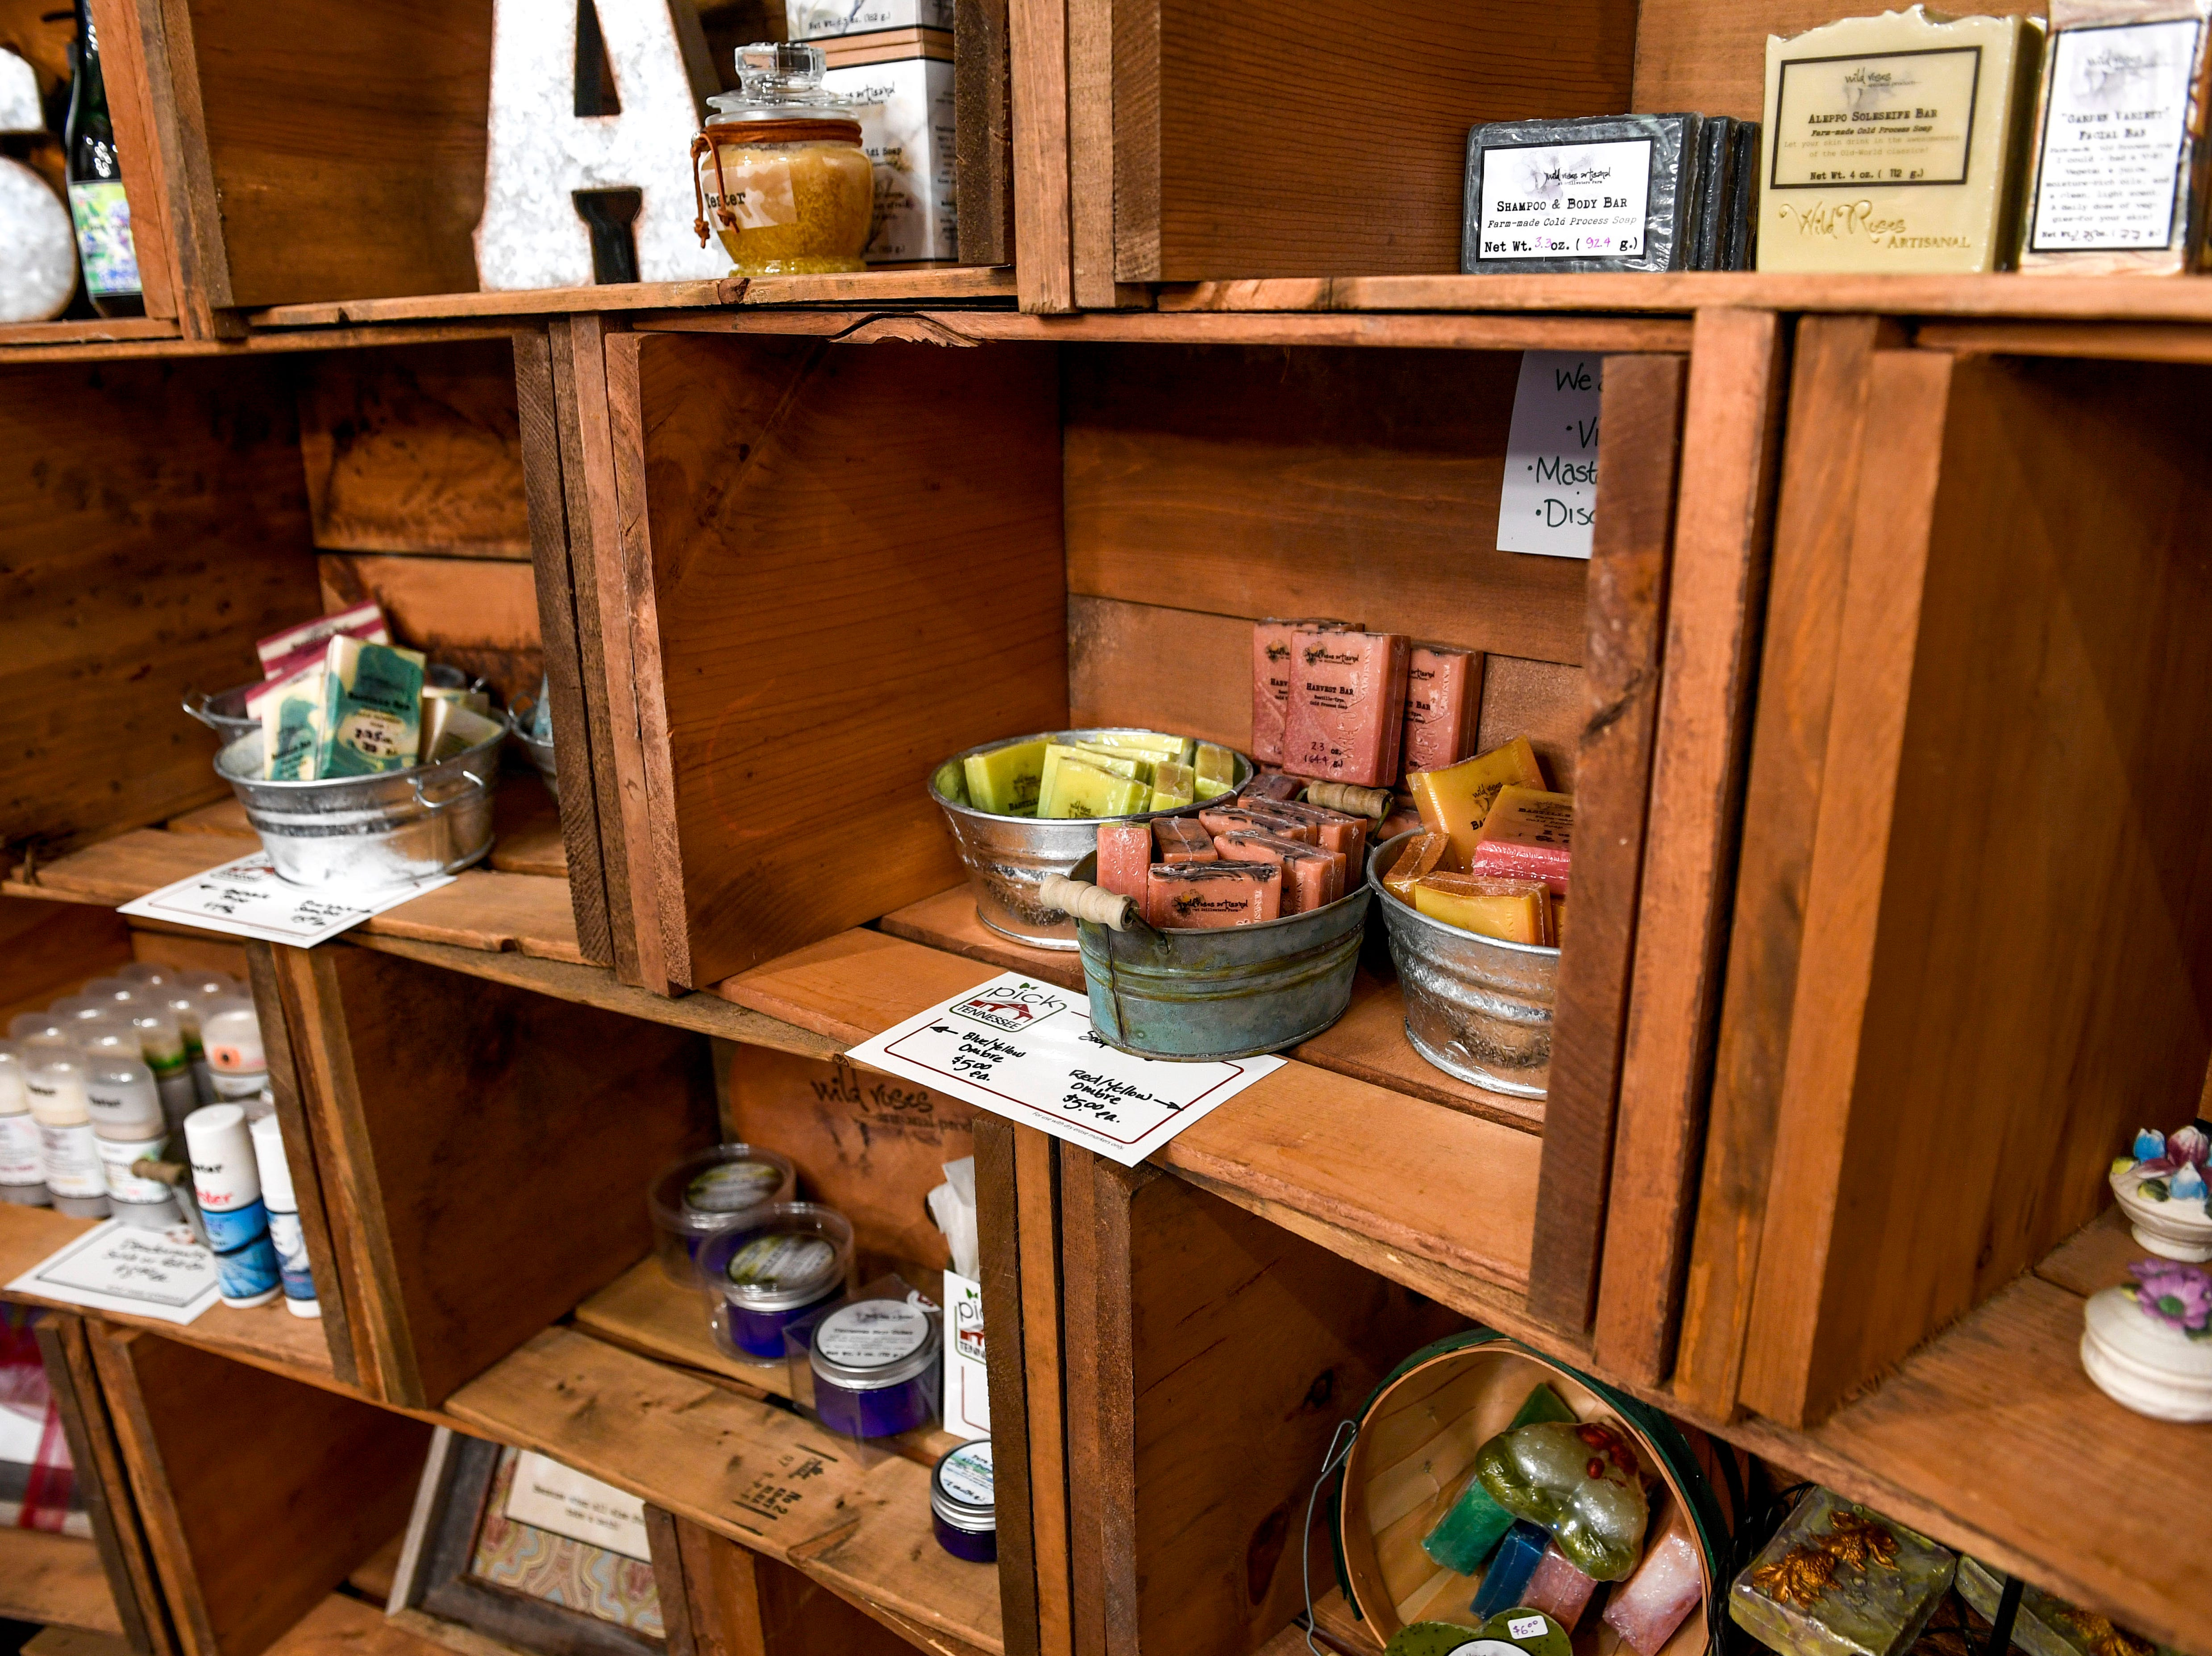 Products created by Valeria Pitoni are show on display in her small shop at Stillwaters Farm in Henderson, Tenn., on Monday, Nov. 5, 2018.